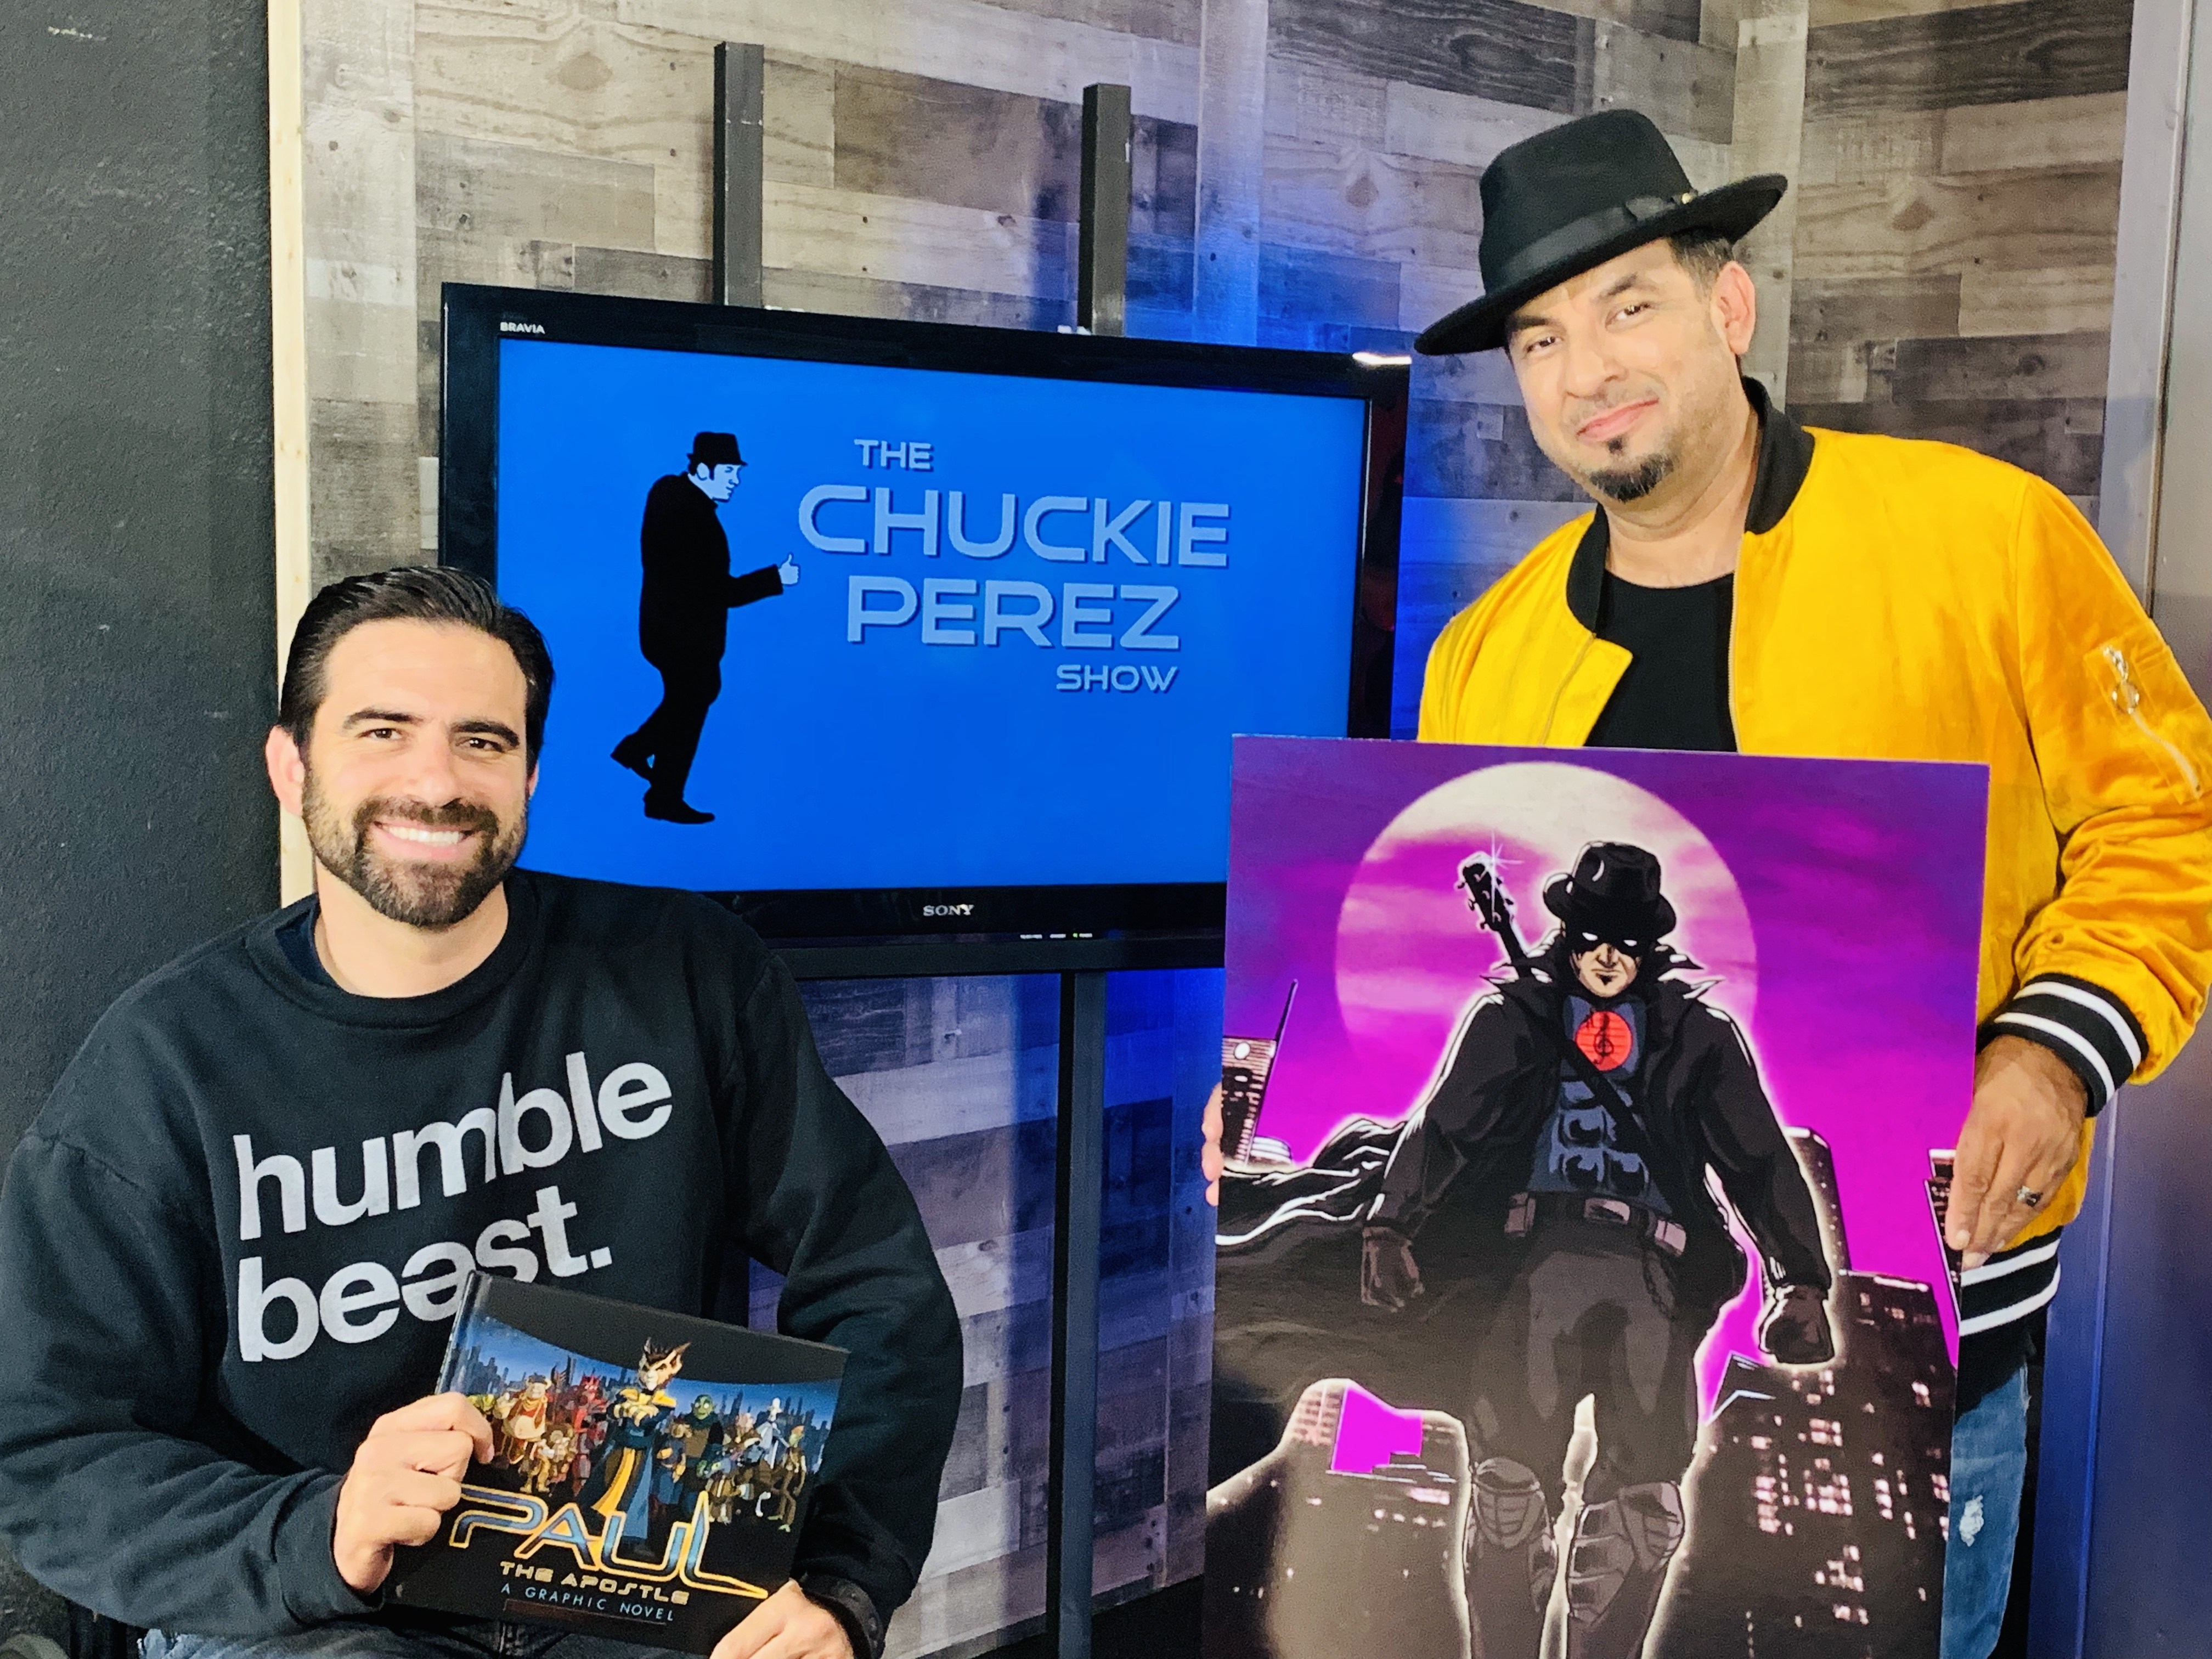 'THE CHUCKIE PEREZ SHOW' IS UNDERWAY WITH NEW EPISODES